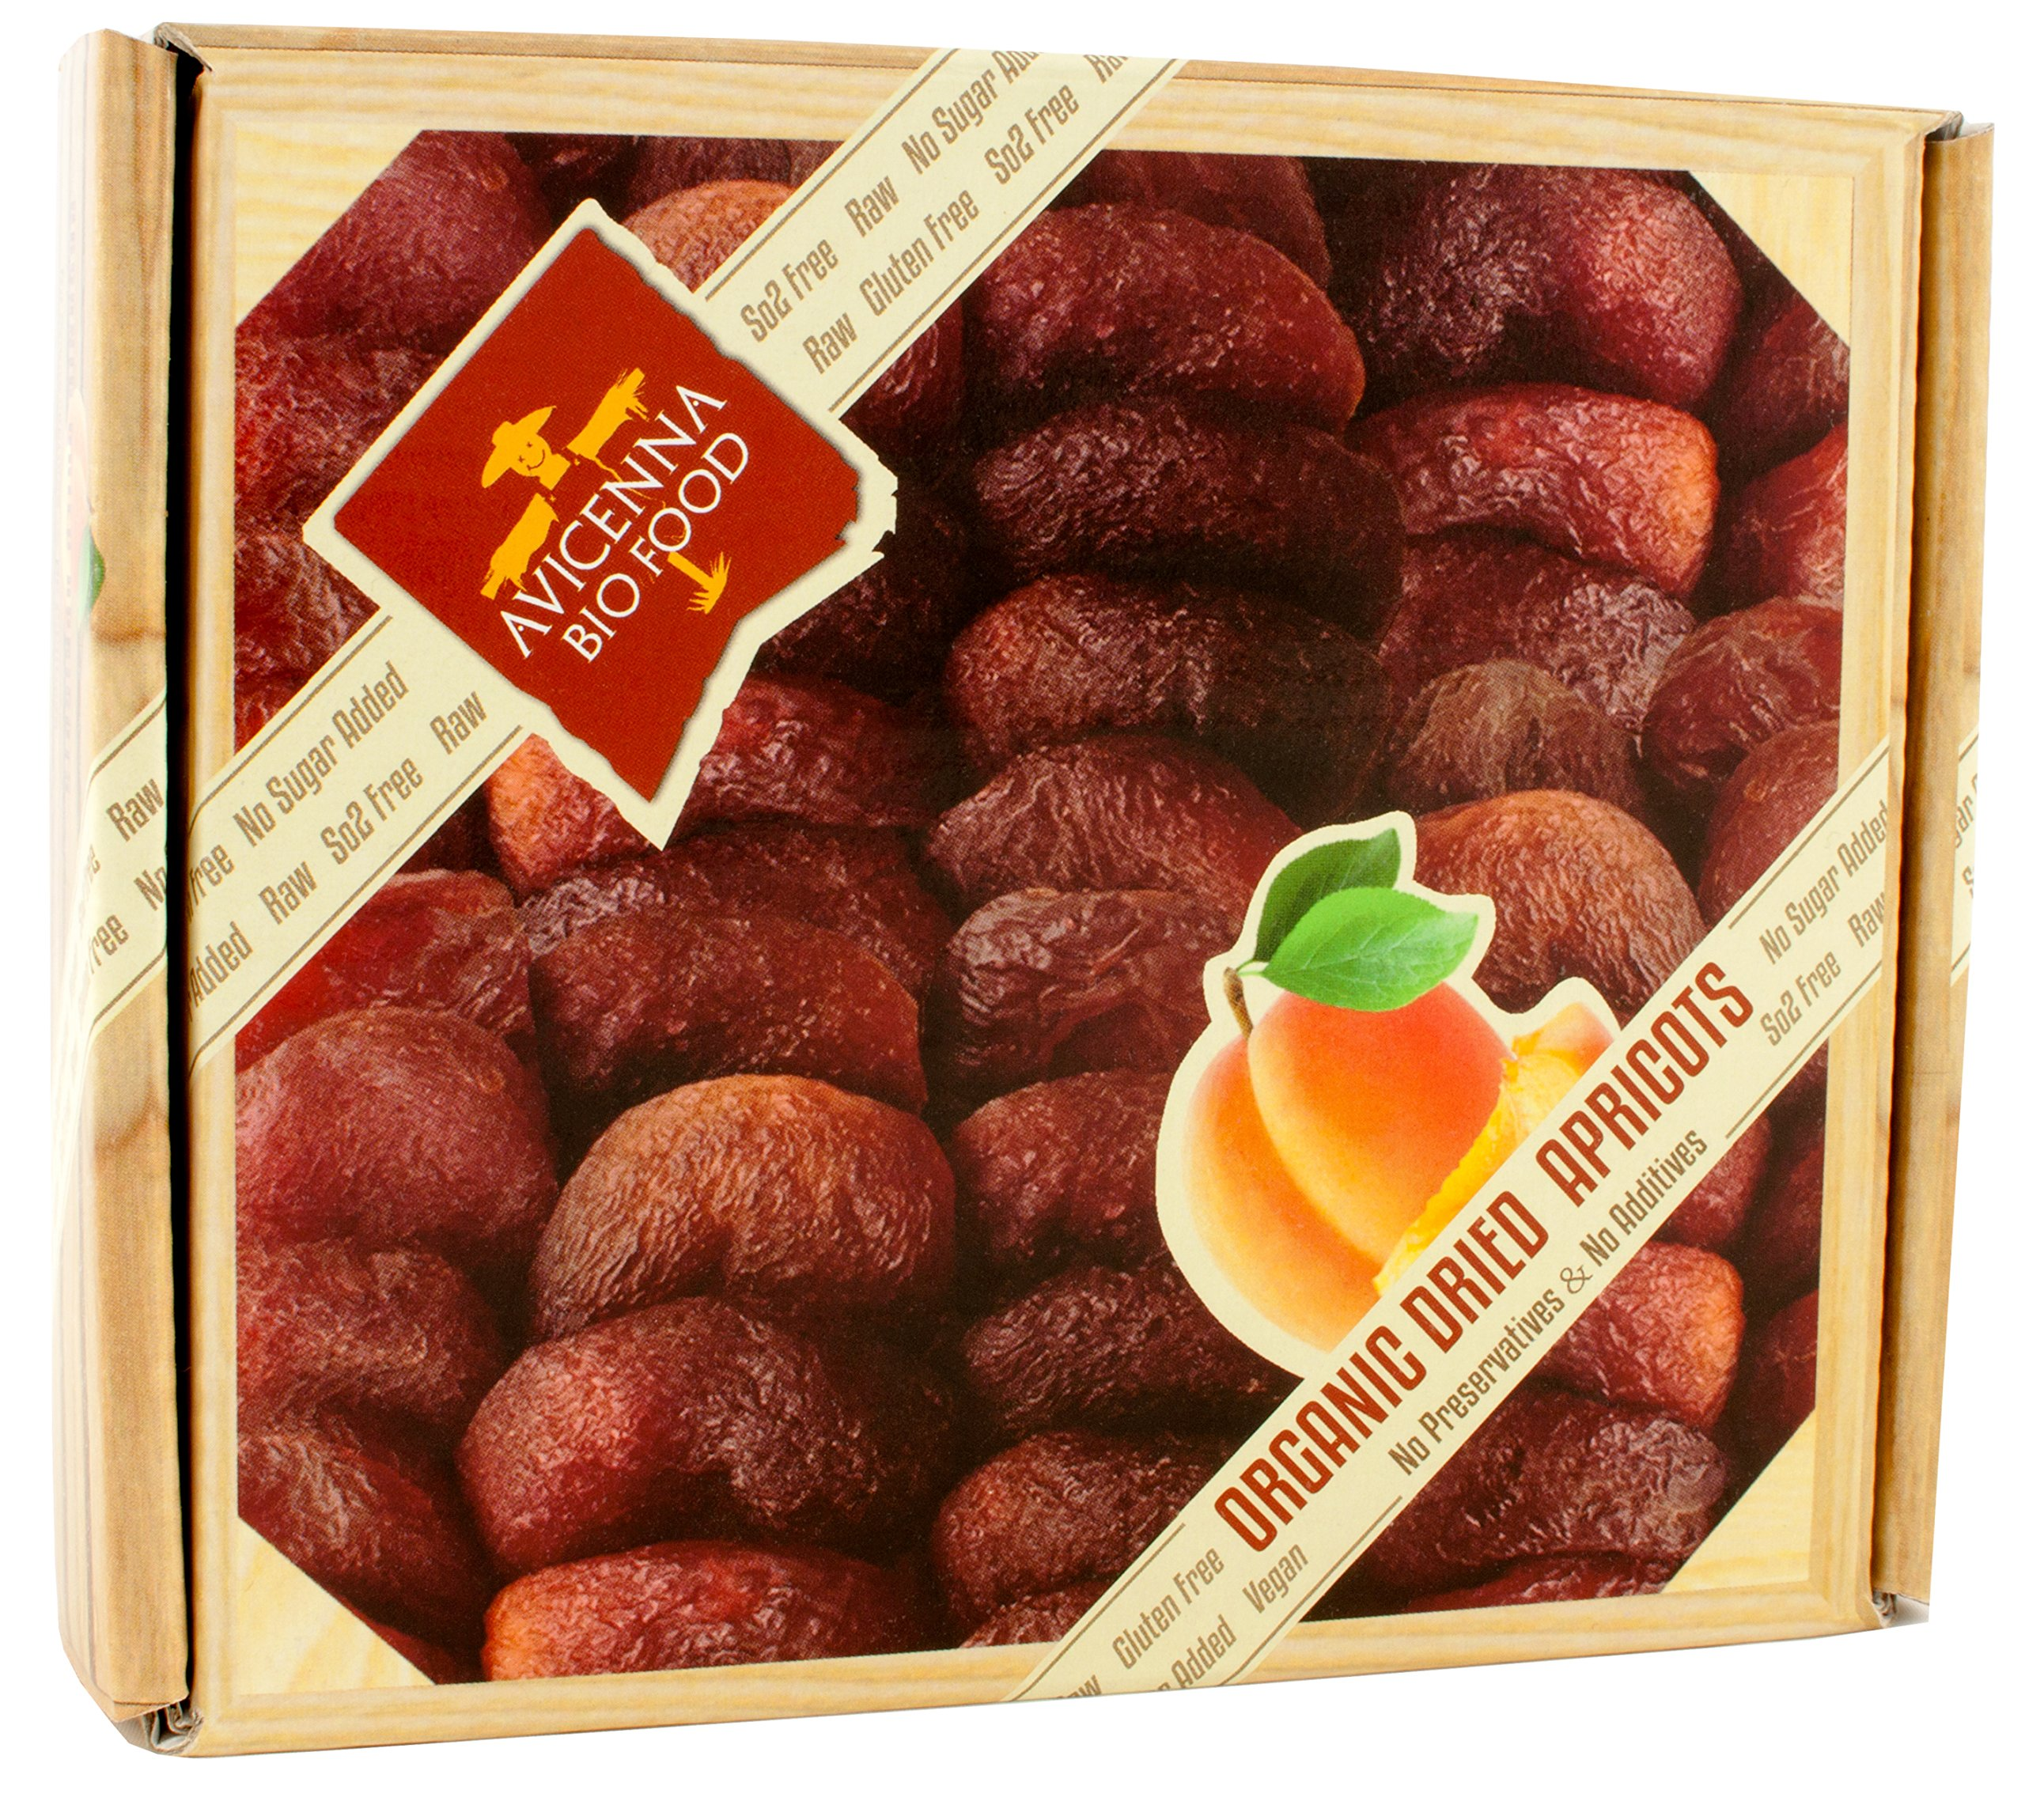 Premium Organic Dried Apricots | Raw, Non GMO, Vegan, Vegetarian, Unsulfured, Sun Dried Fruit, Turkish Apricots, No Sugar Added, Gift Box 100g by Avicenna BIO Food (Image #2)